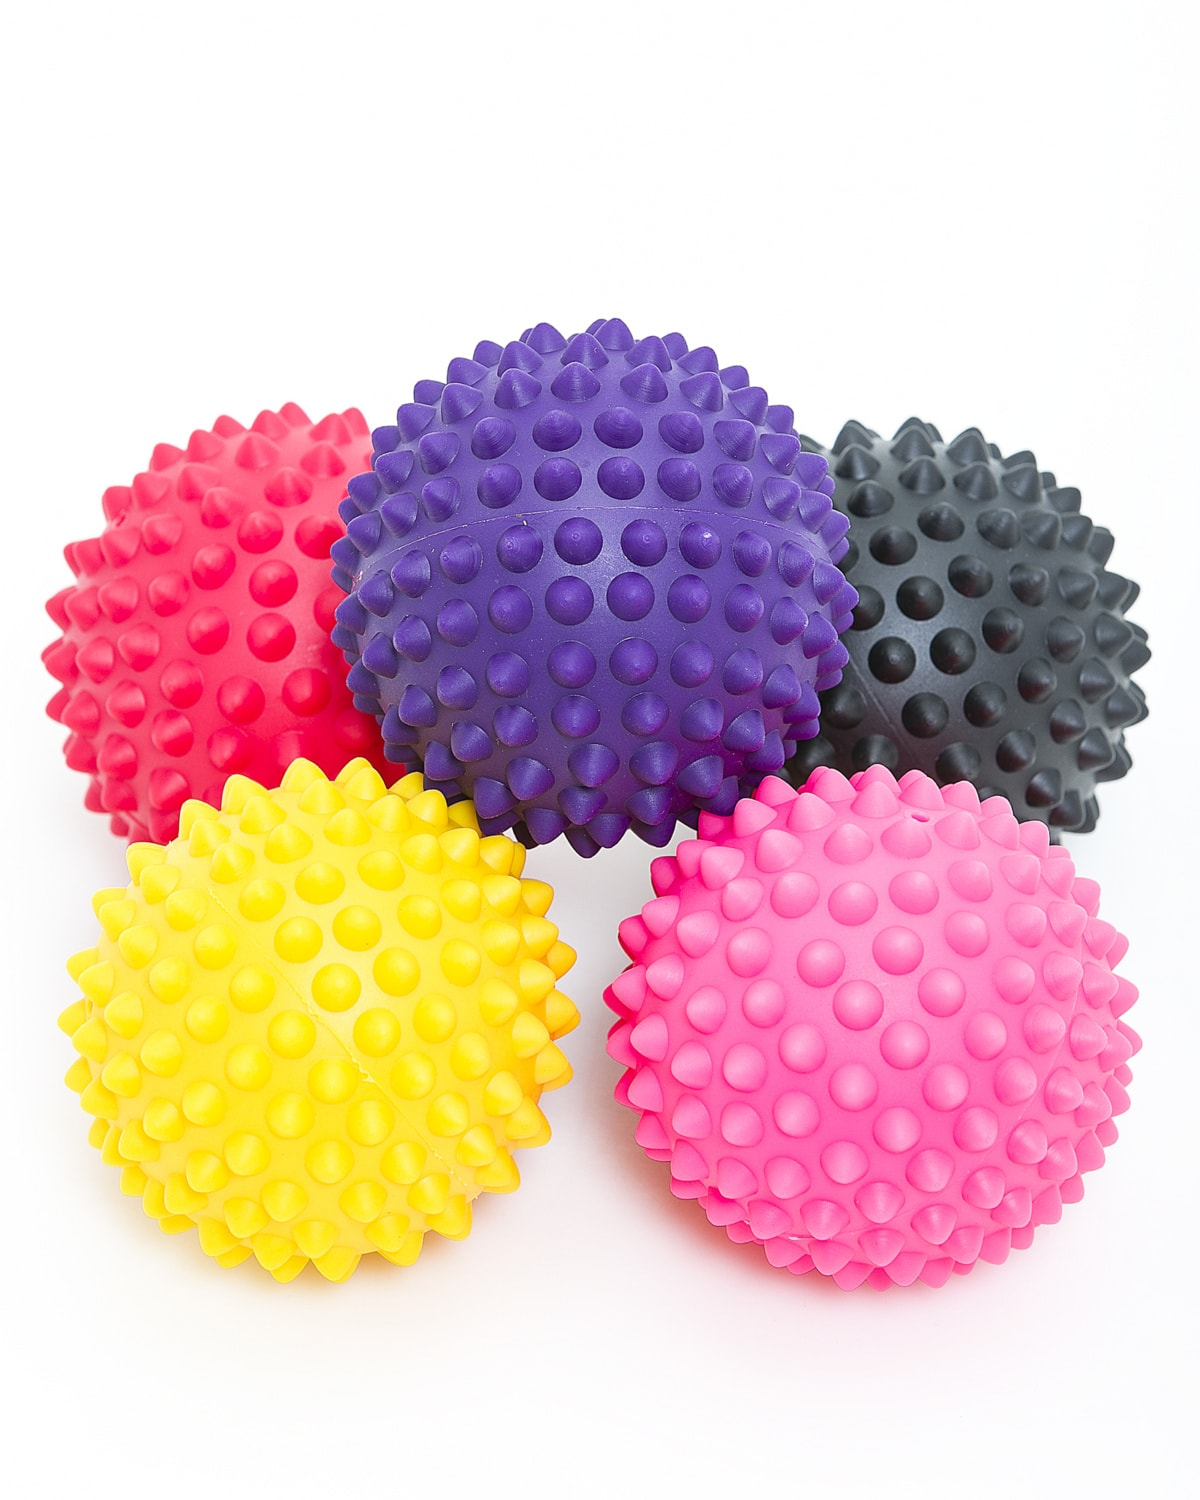 LEVITY Premium Fitness Spiky Trigger Ball d